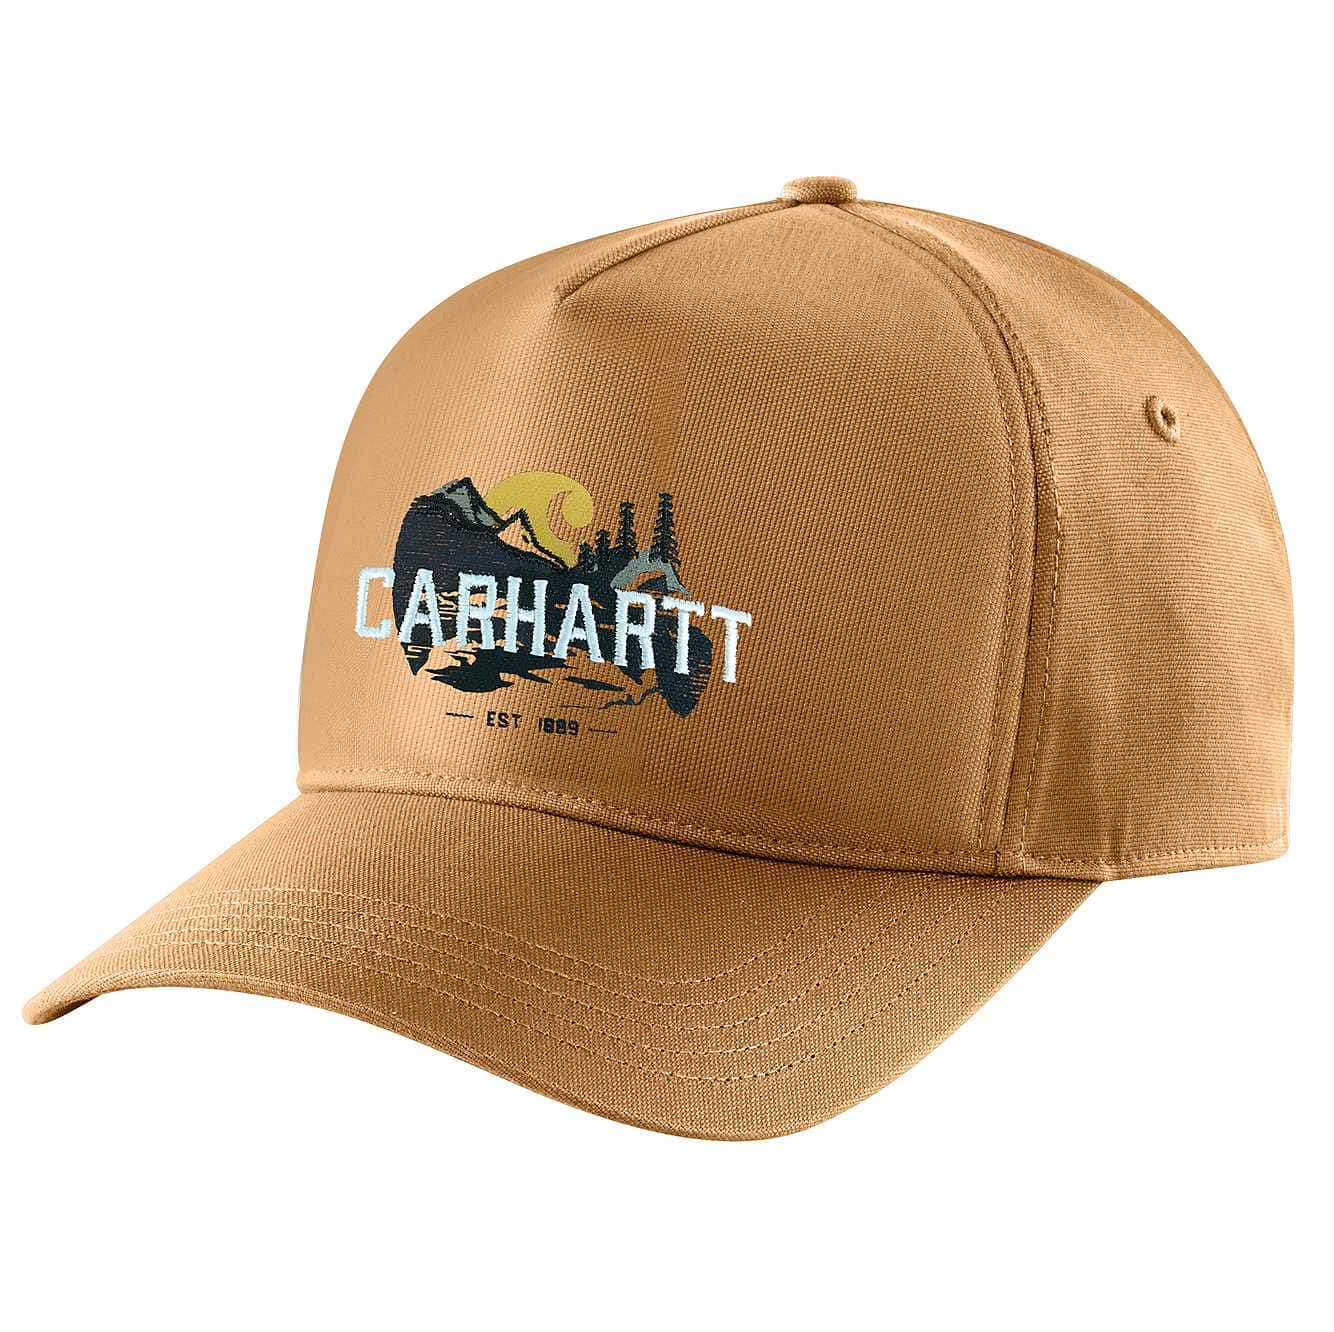 Picture of Canvas Outdoor Graphic Cap in Carhartt Brown